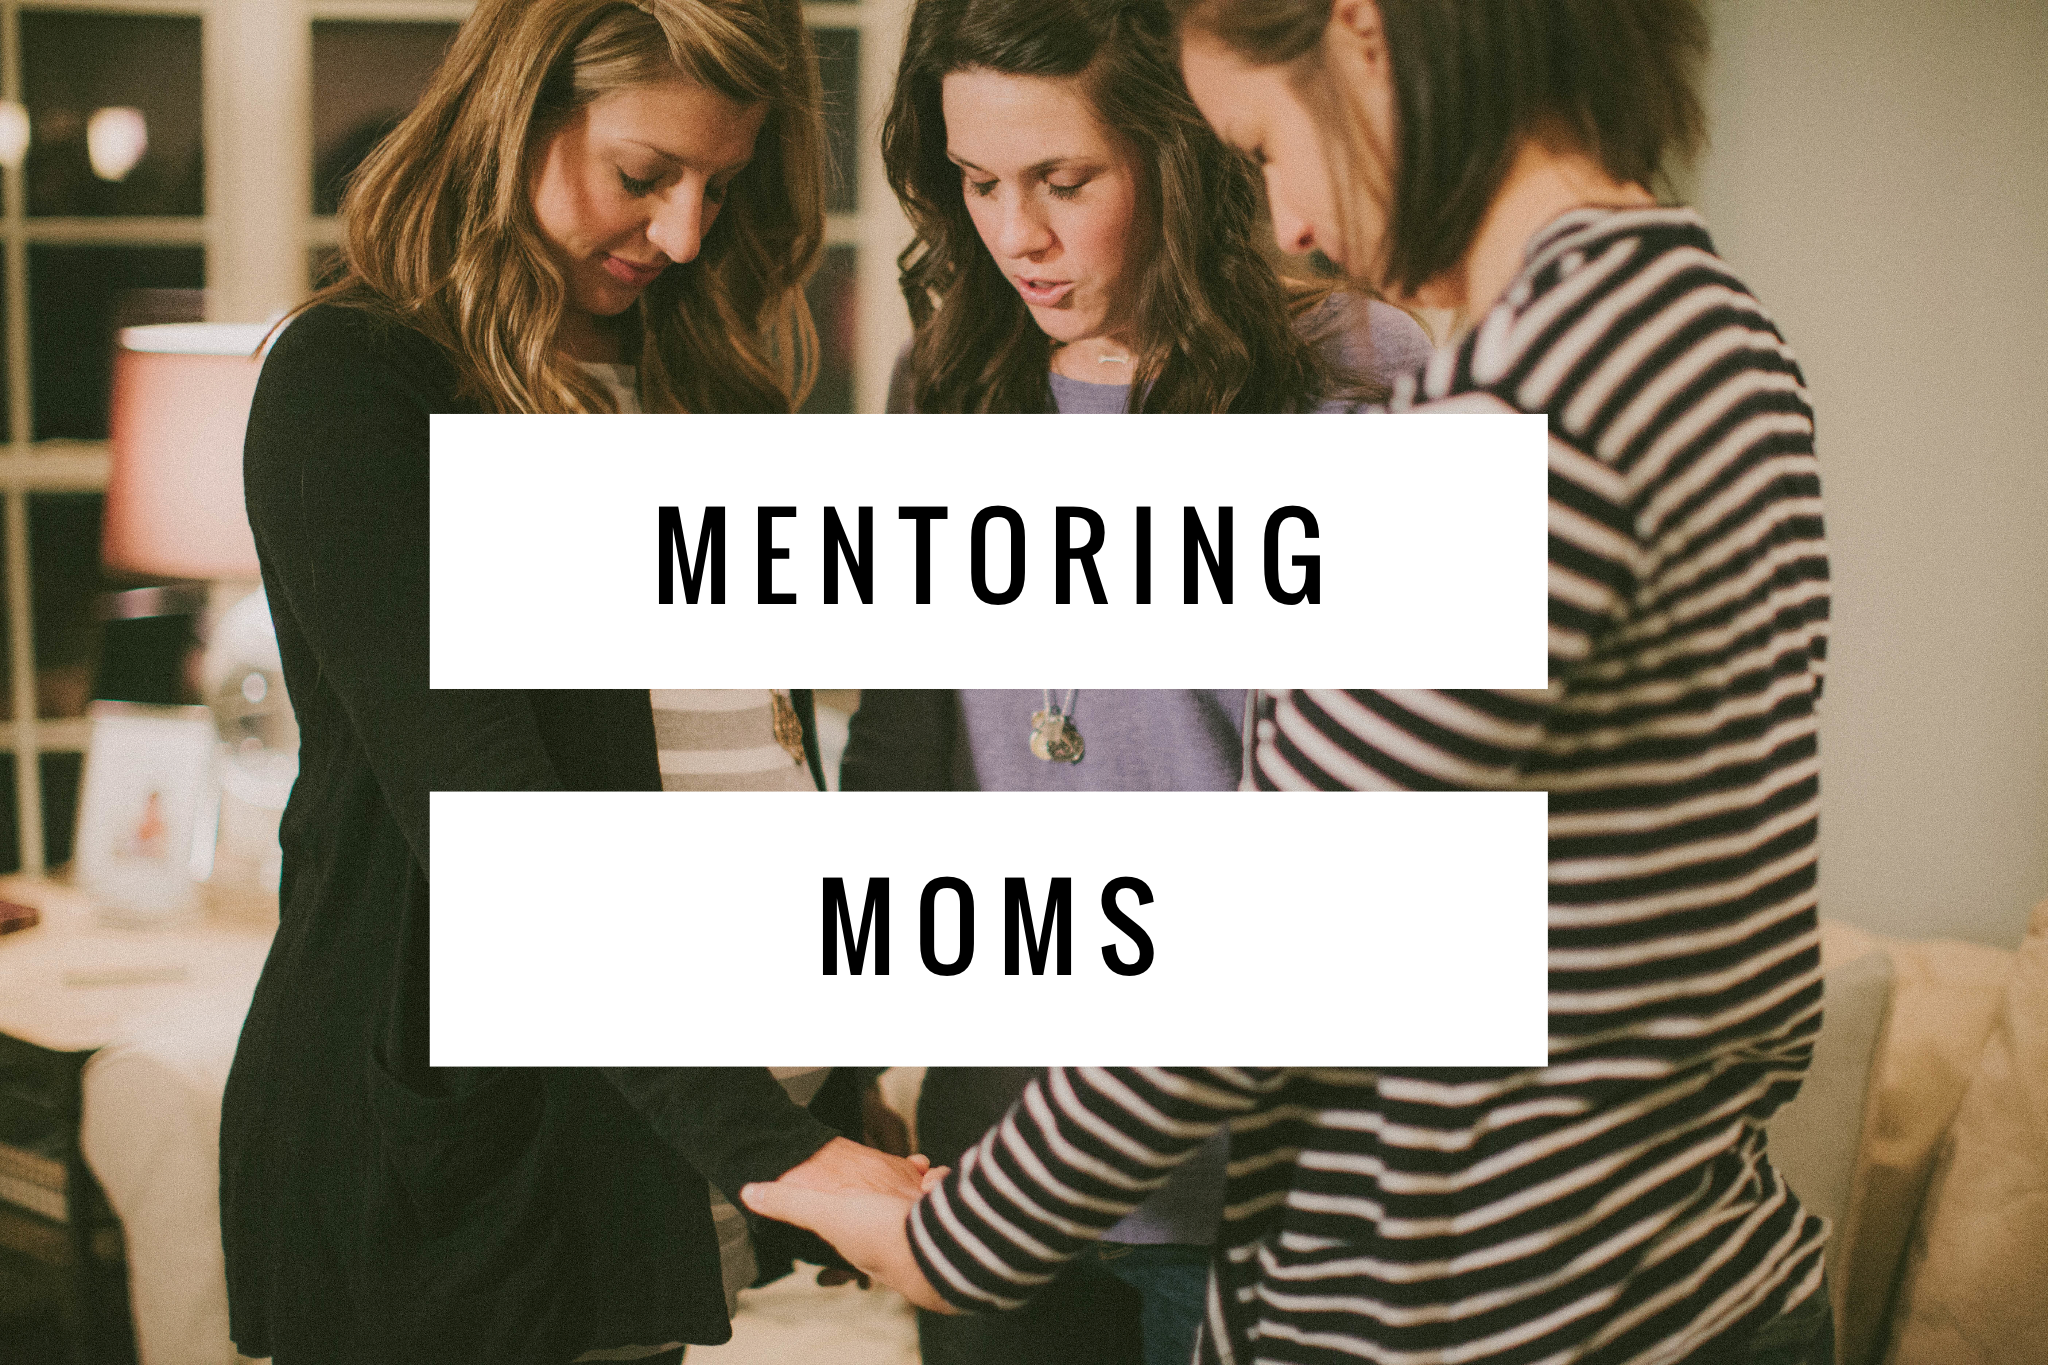 Mentoring Moms Web Graphic 2.png